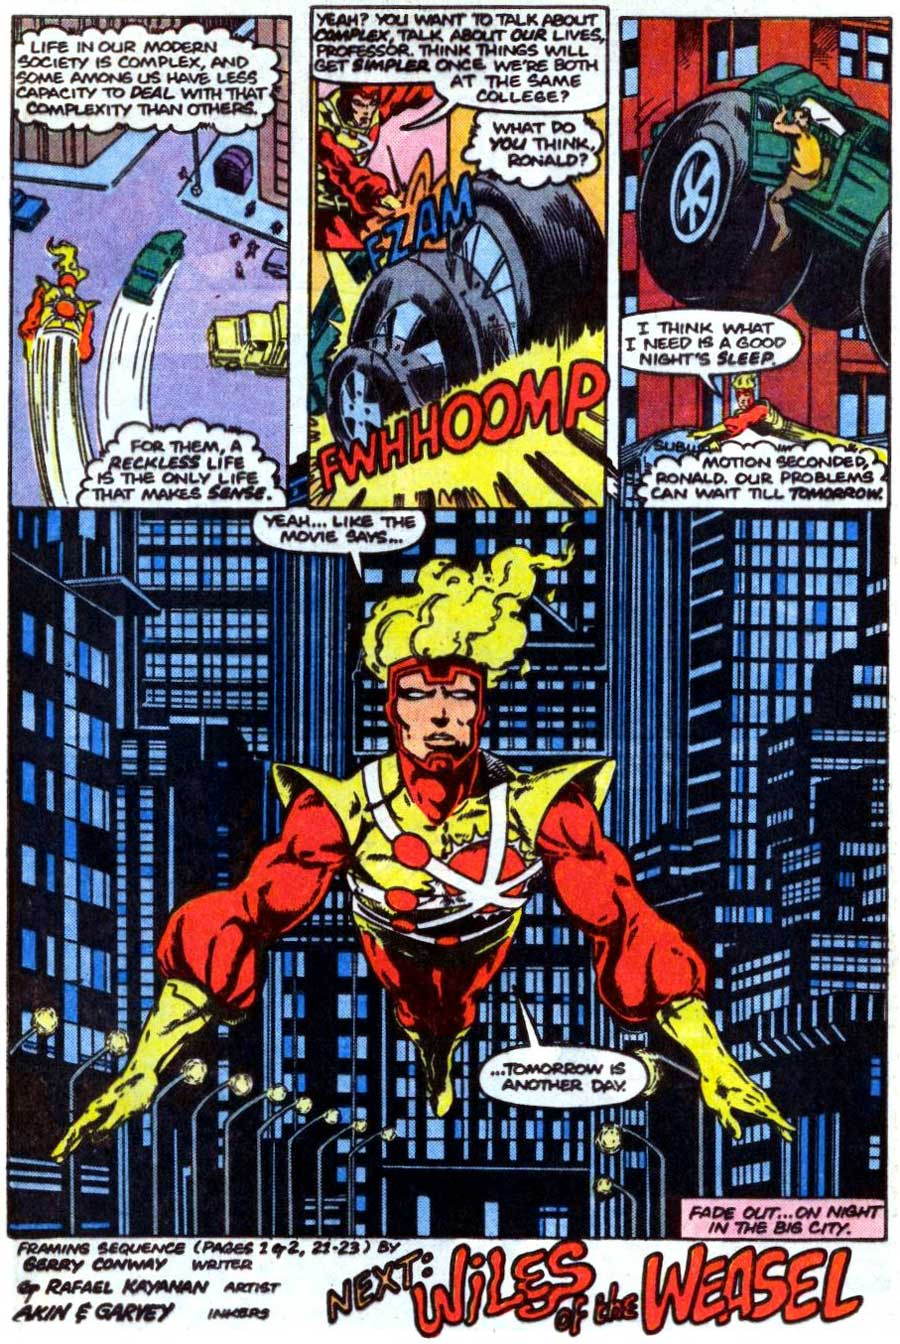 Fury of Firestorm #37 by Gerry Conway, Joey Cavalieri, Rafael Kayanan, and Alexi Nino